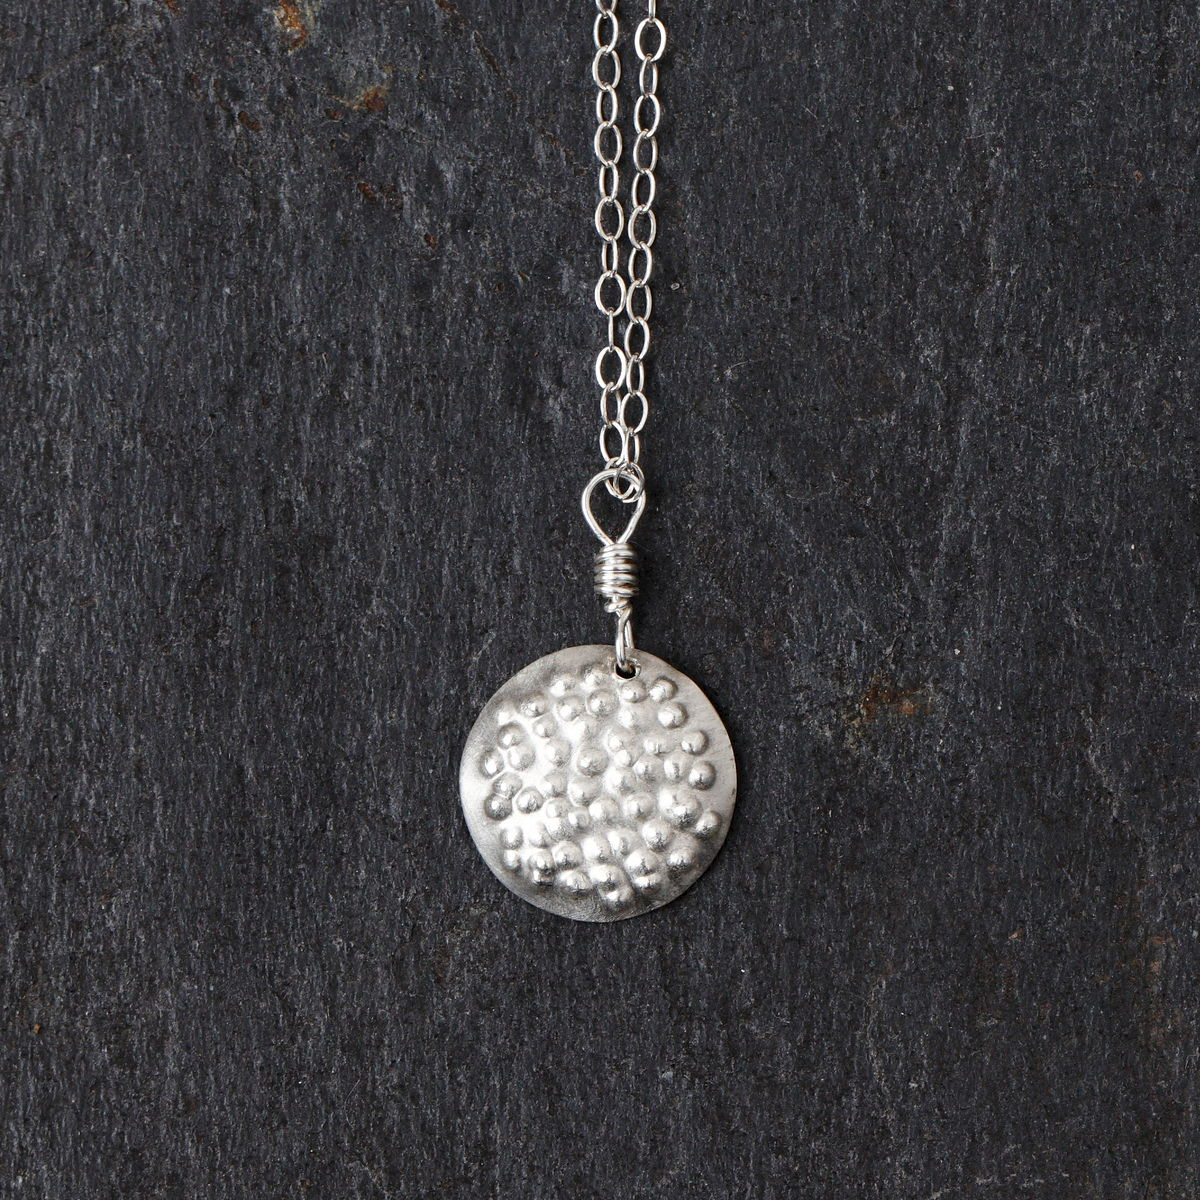 Bumpy Disc necklace - product image